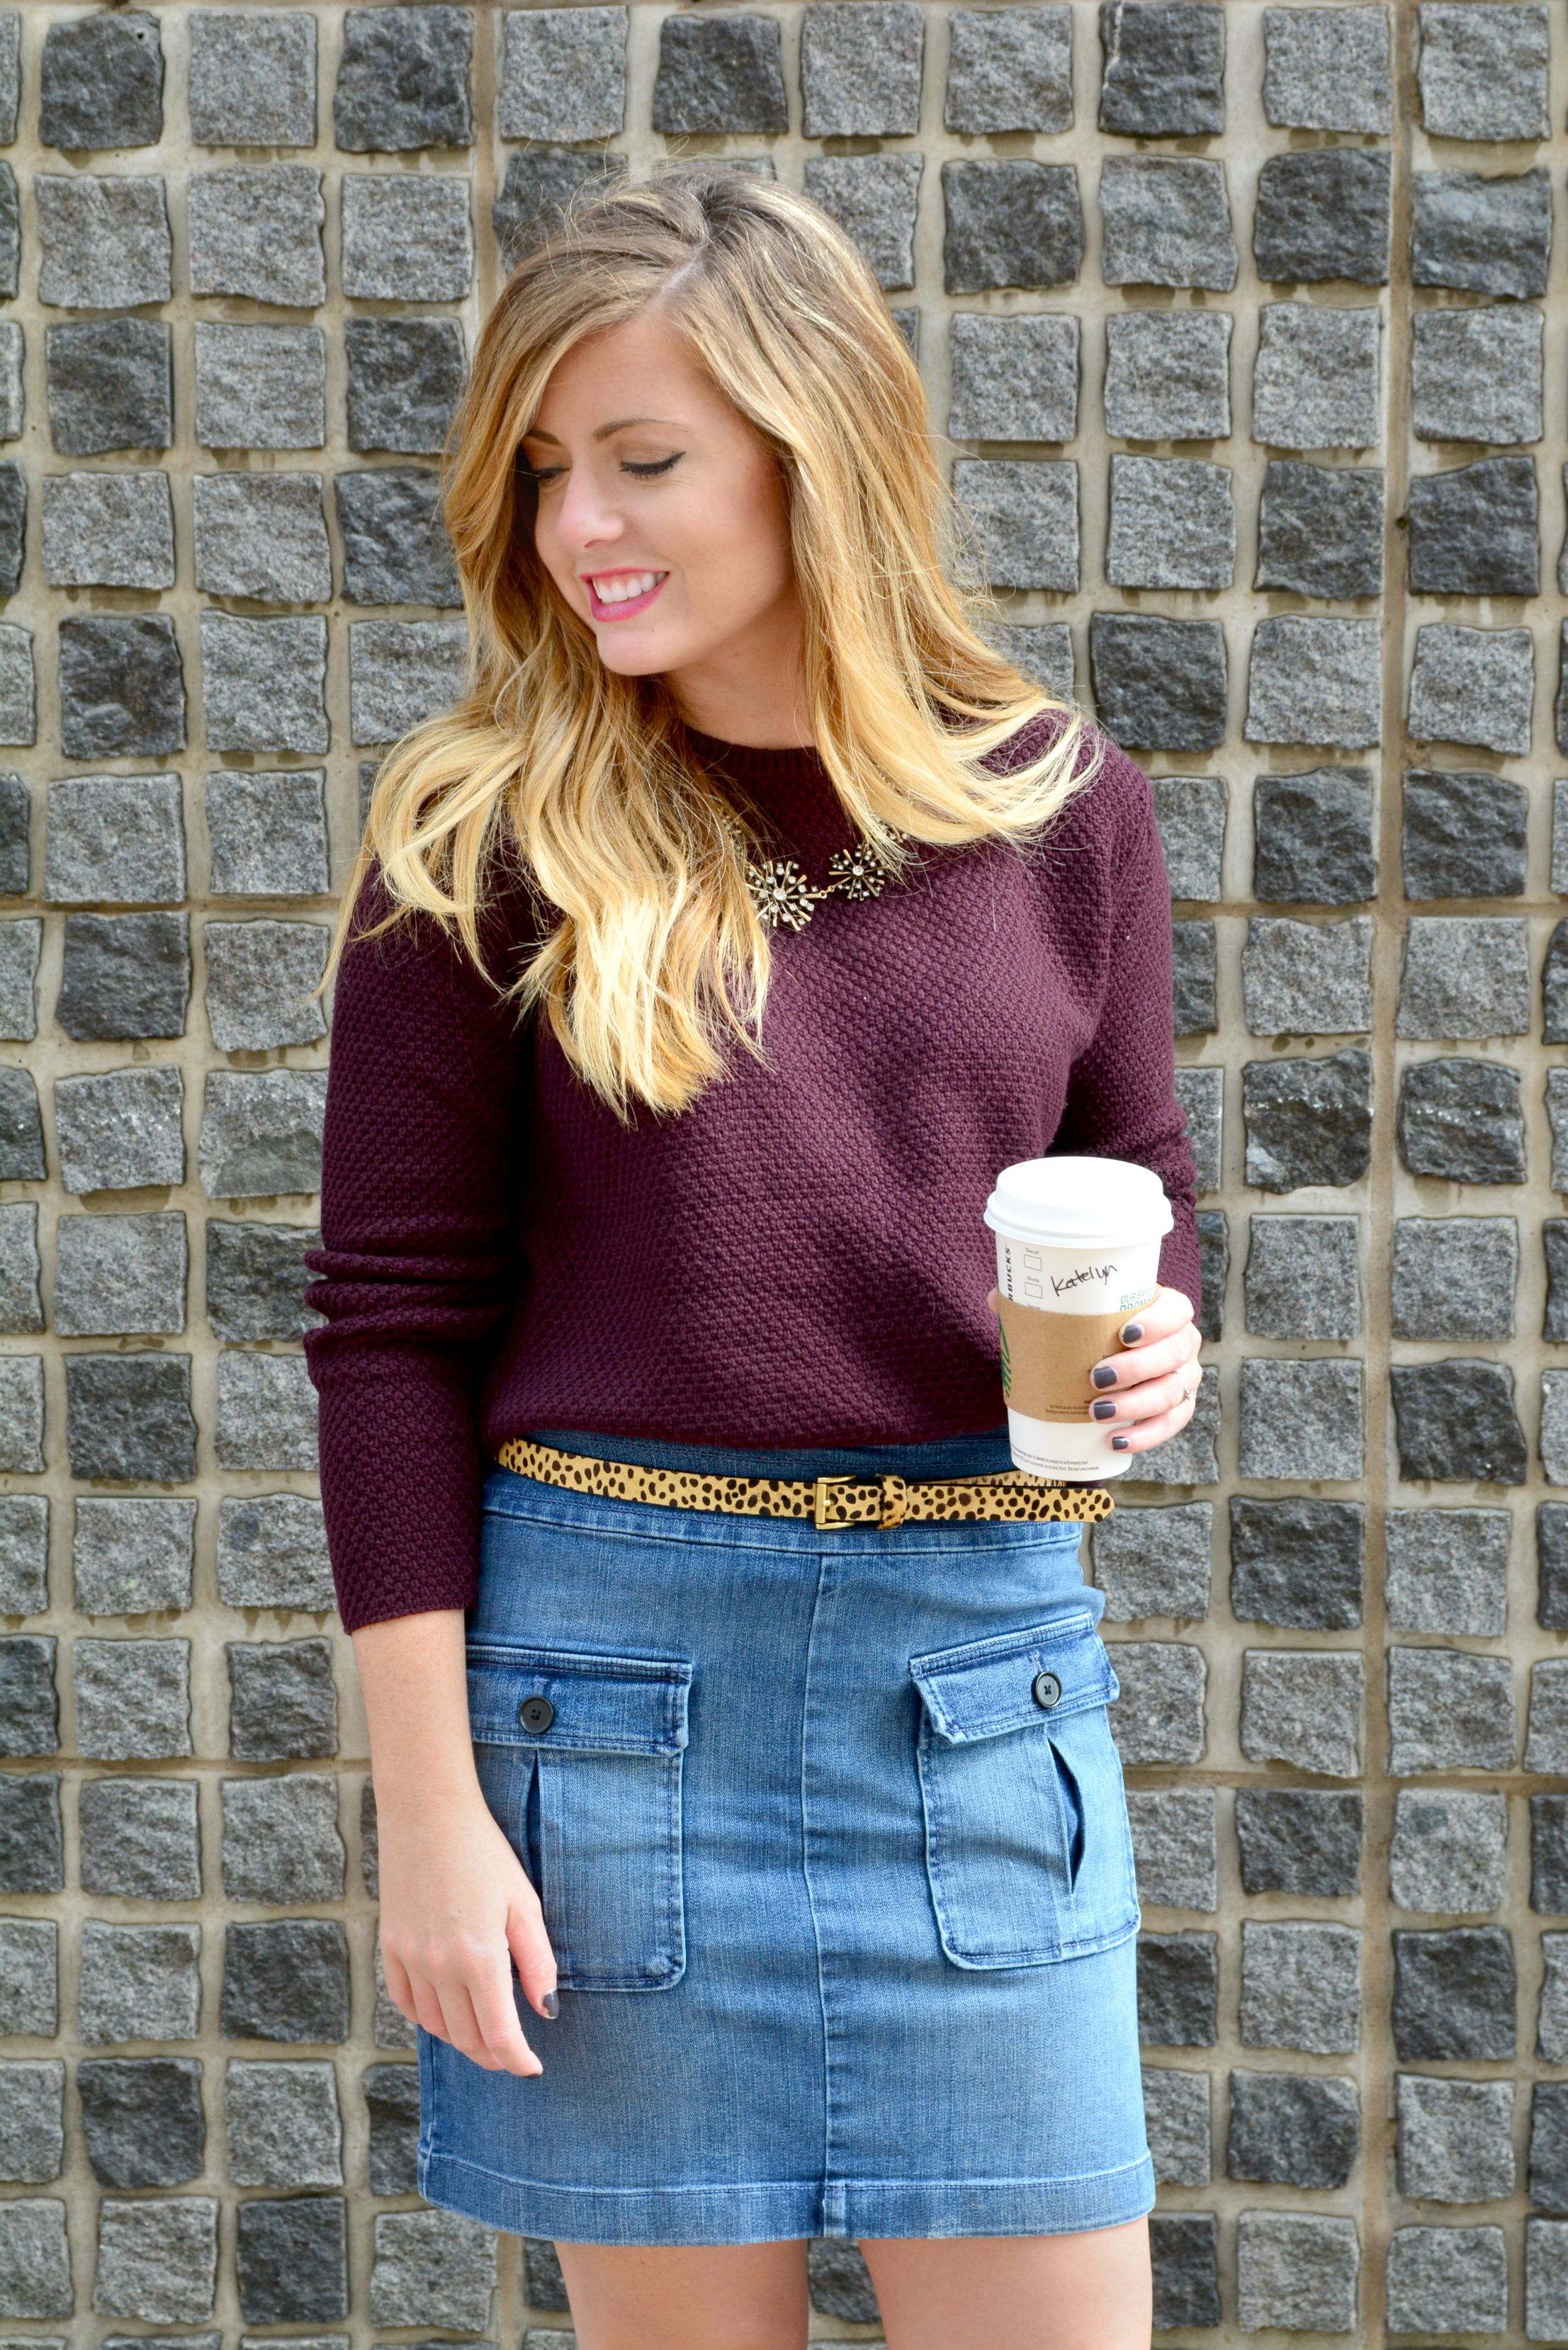 Maroon sweater with statement necklace leopard belt and denim skirt suede booties on Sophisticaited.com a fashion blog by stylist Cait Fore